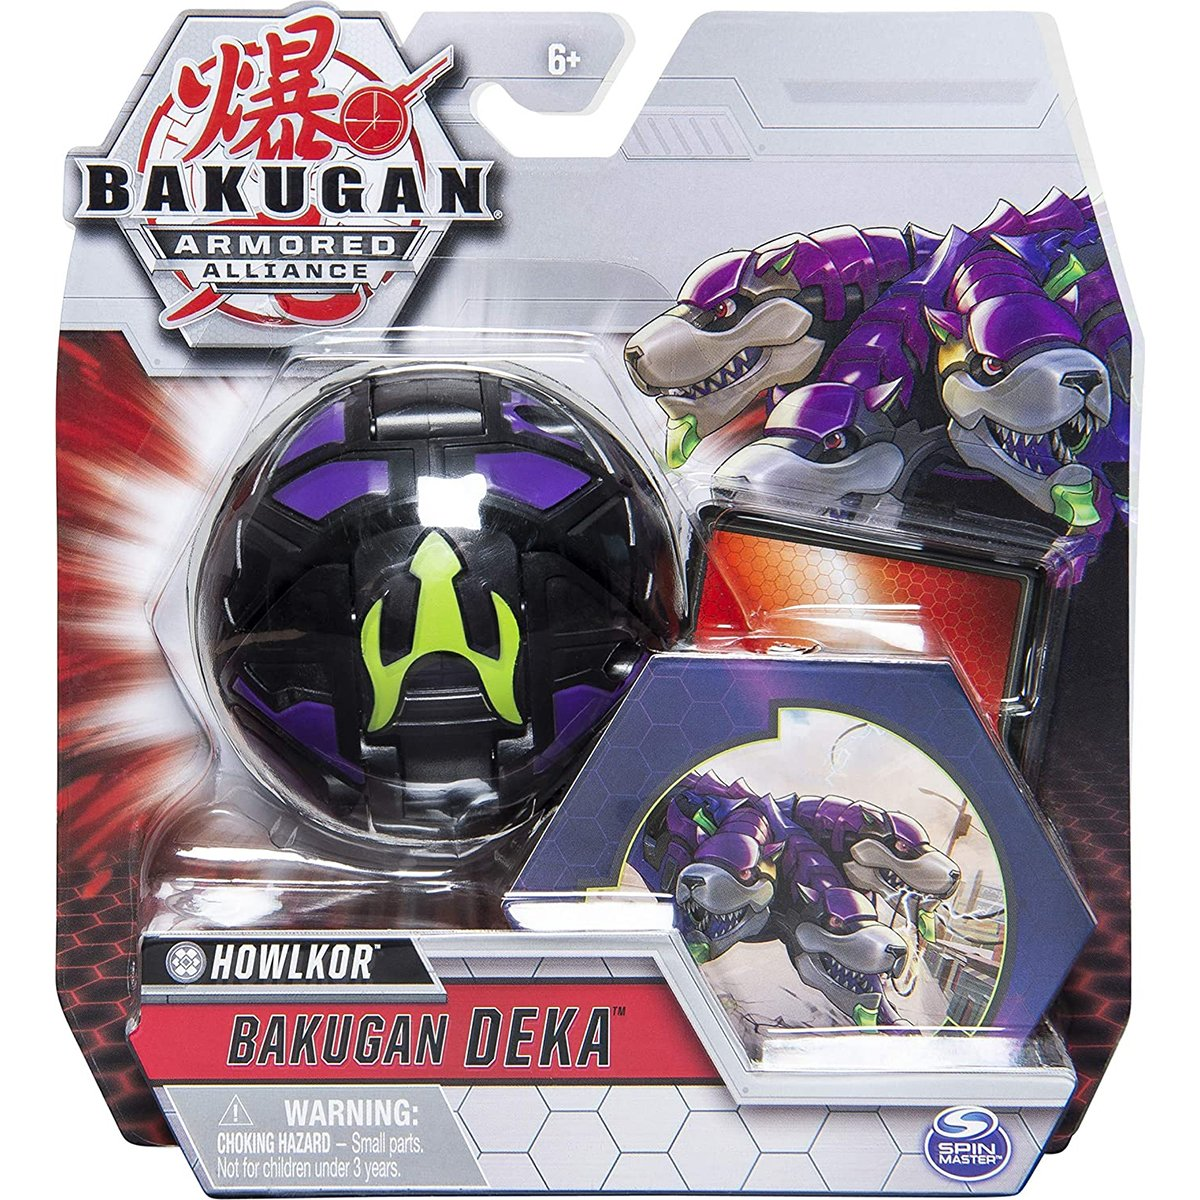 Figurina Bakugan Deka Armored Alliance, Howlkor, 20122720